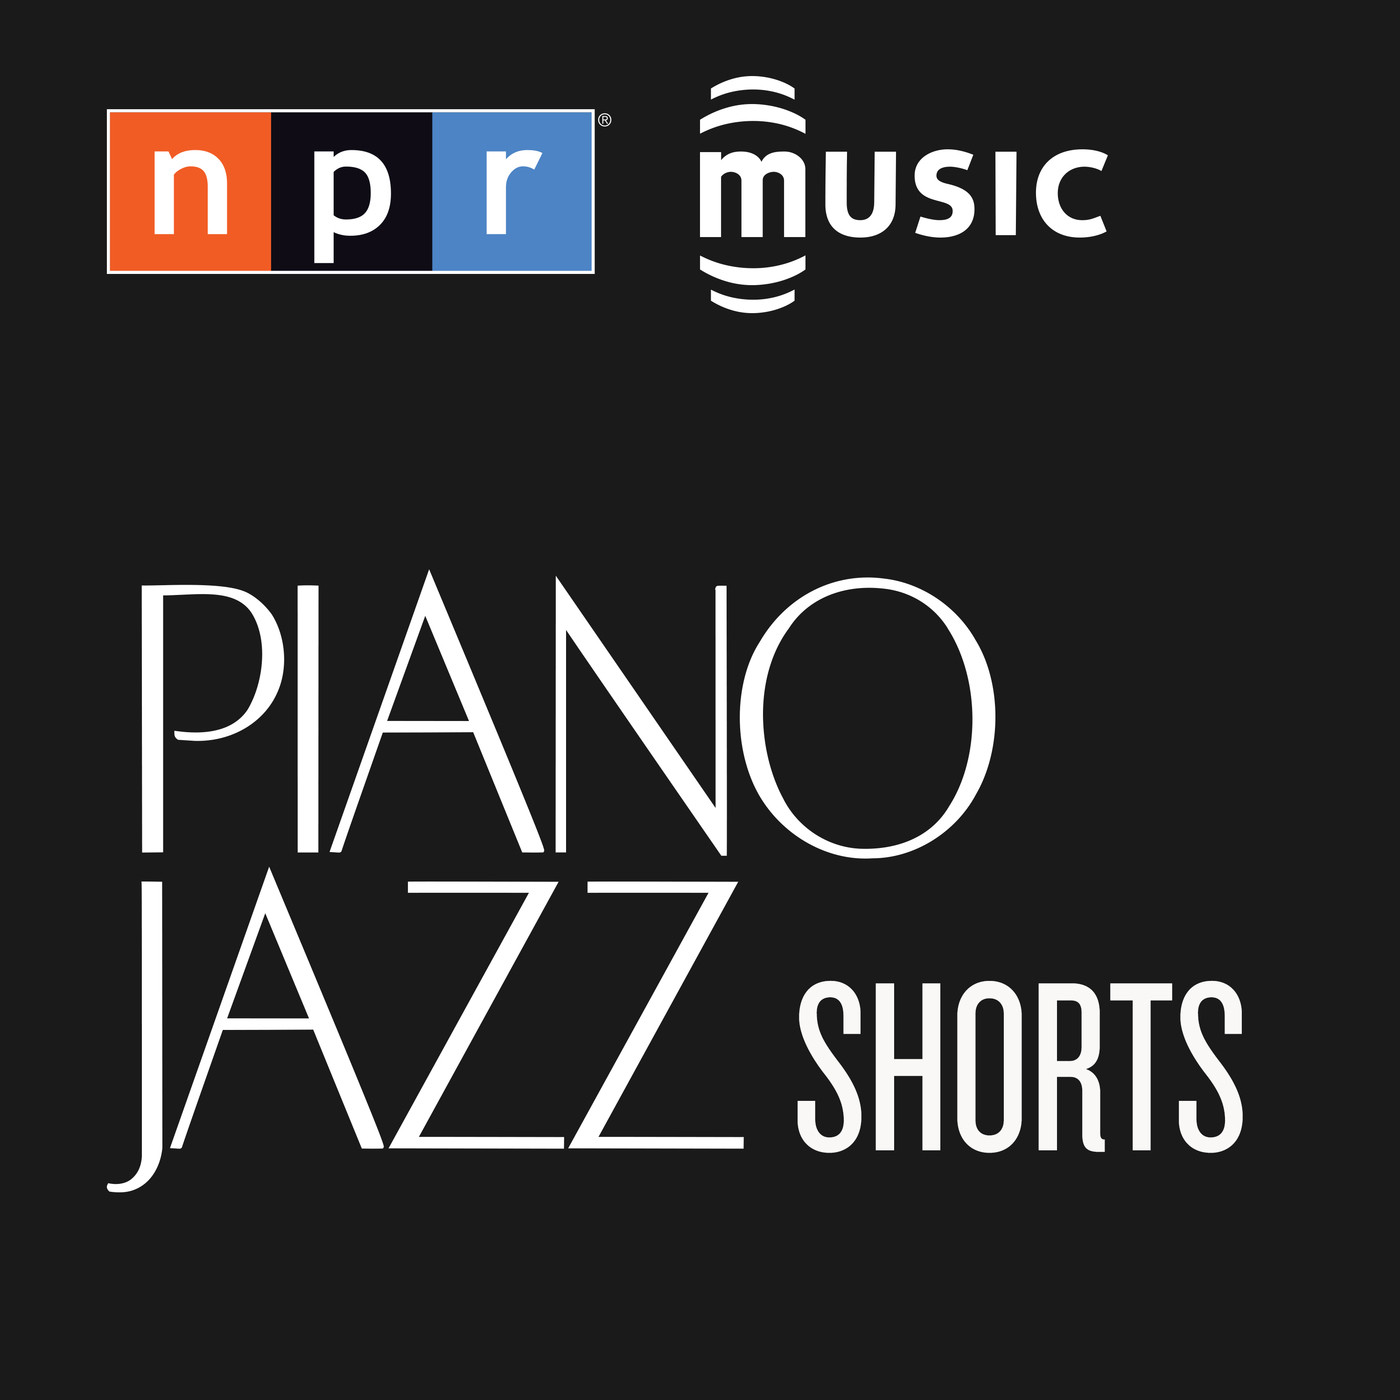 NPR: Piano jazz short podcast